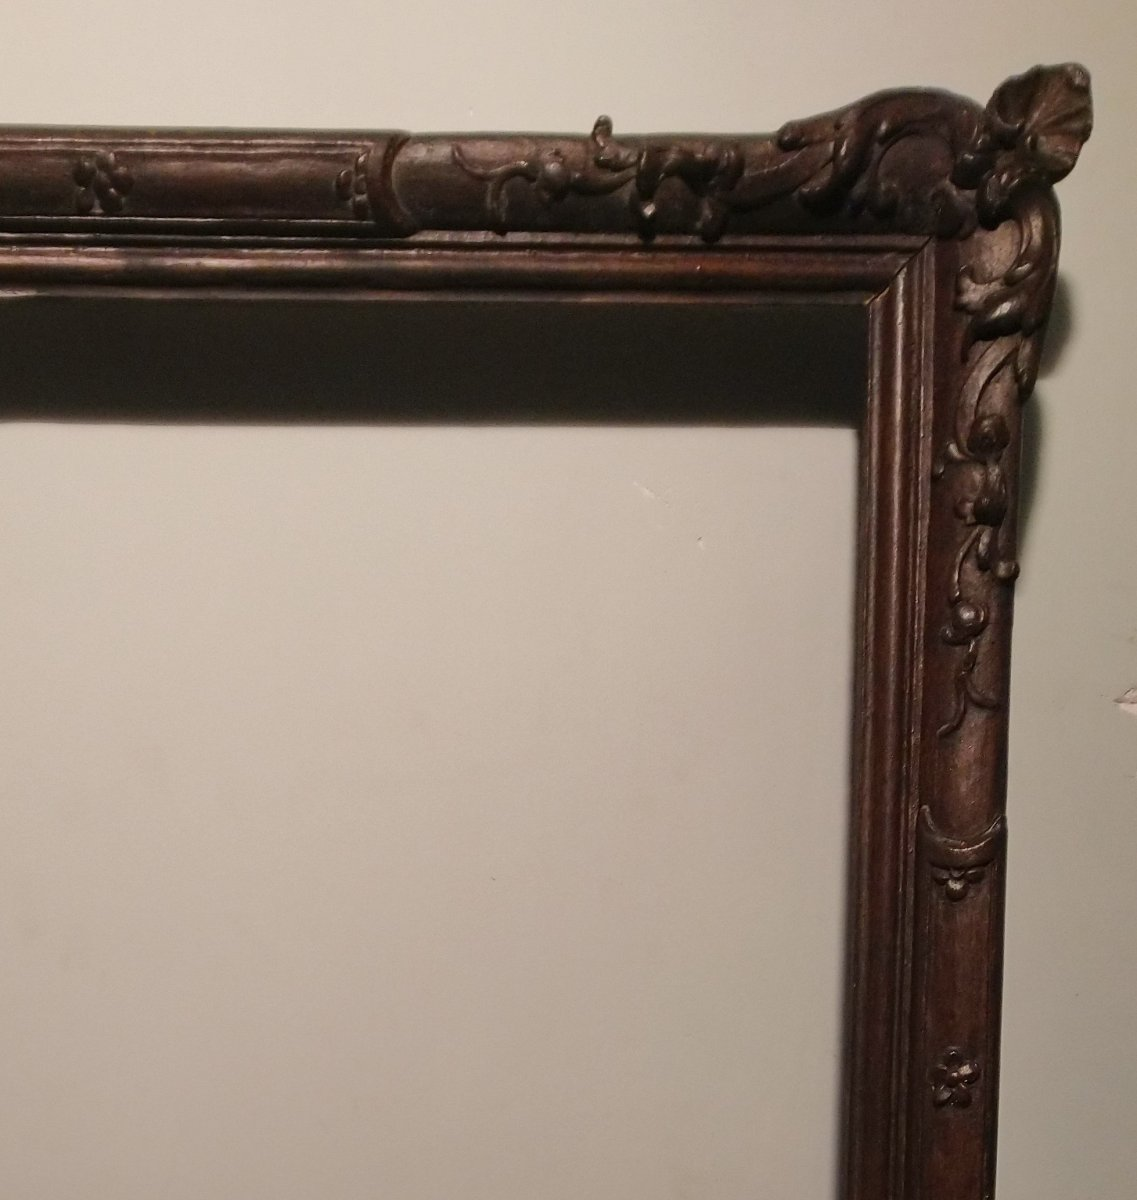 Louis XV Carved Wooden Frame From The 18th Century.